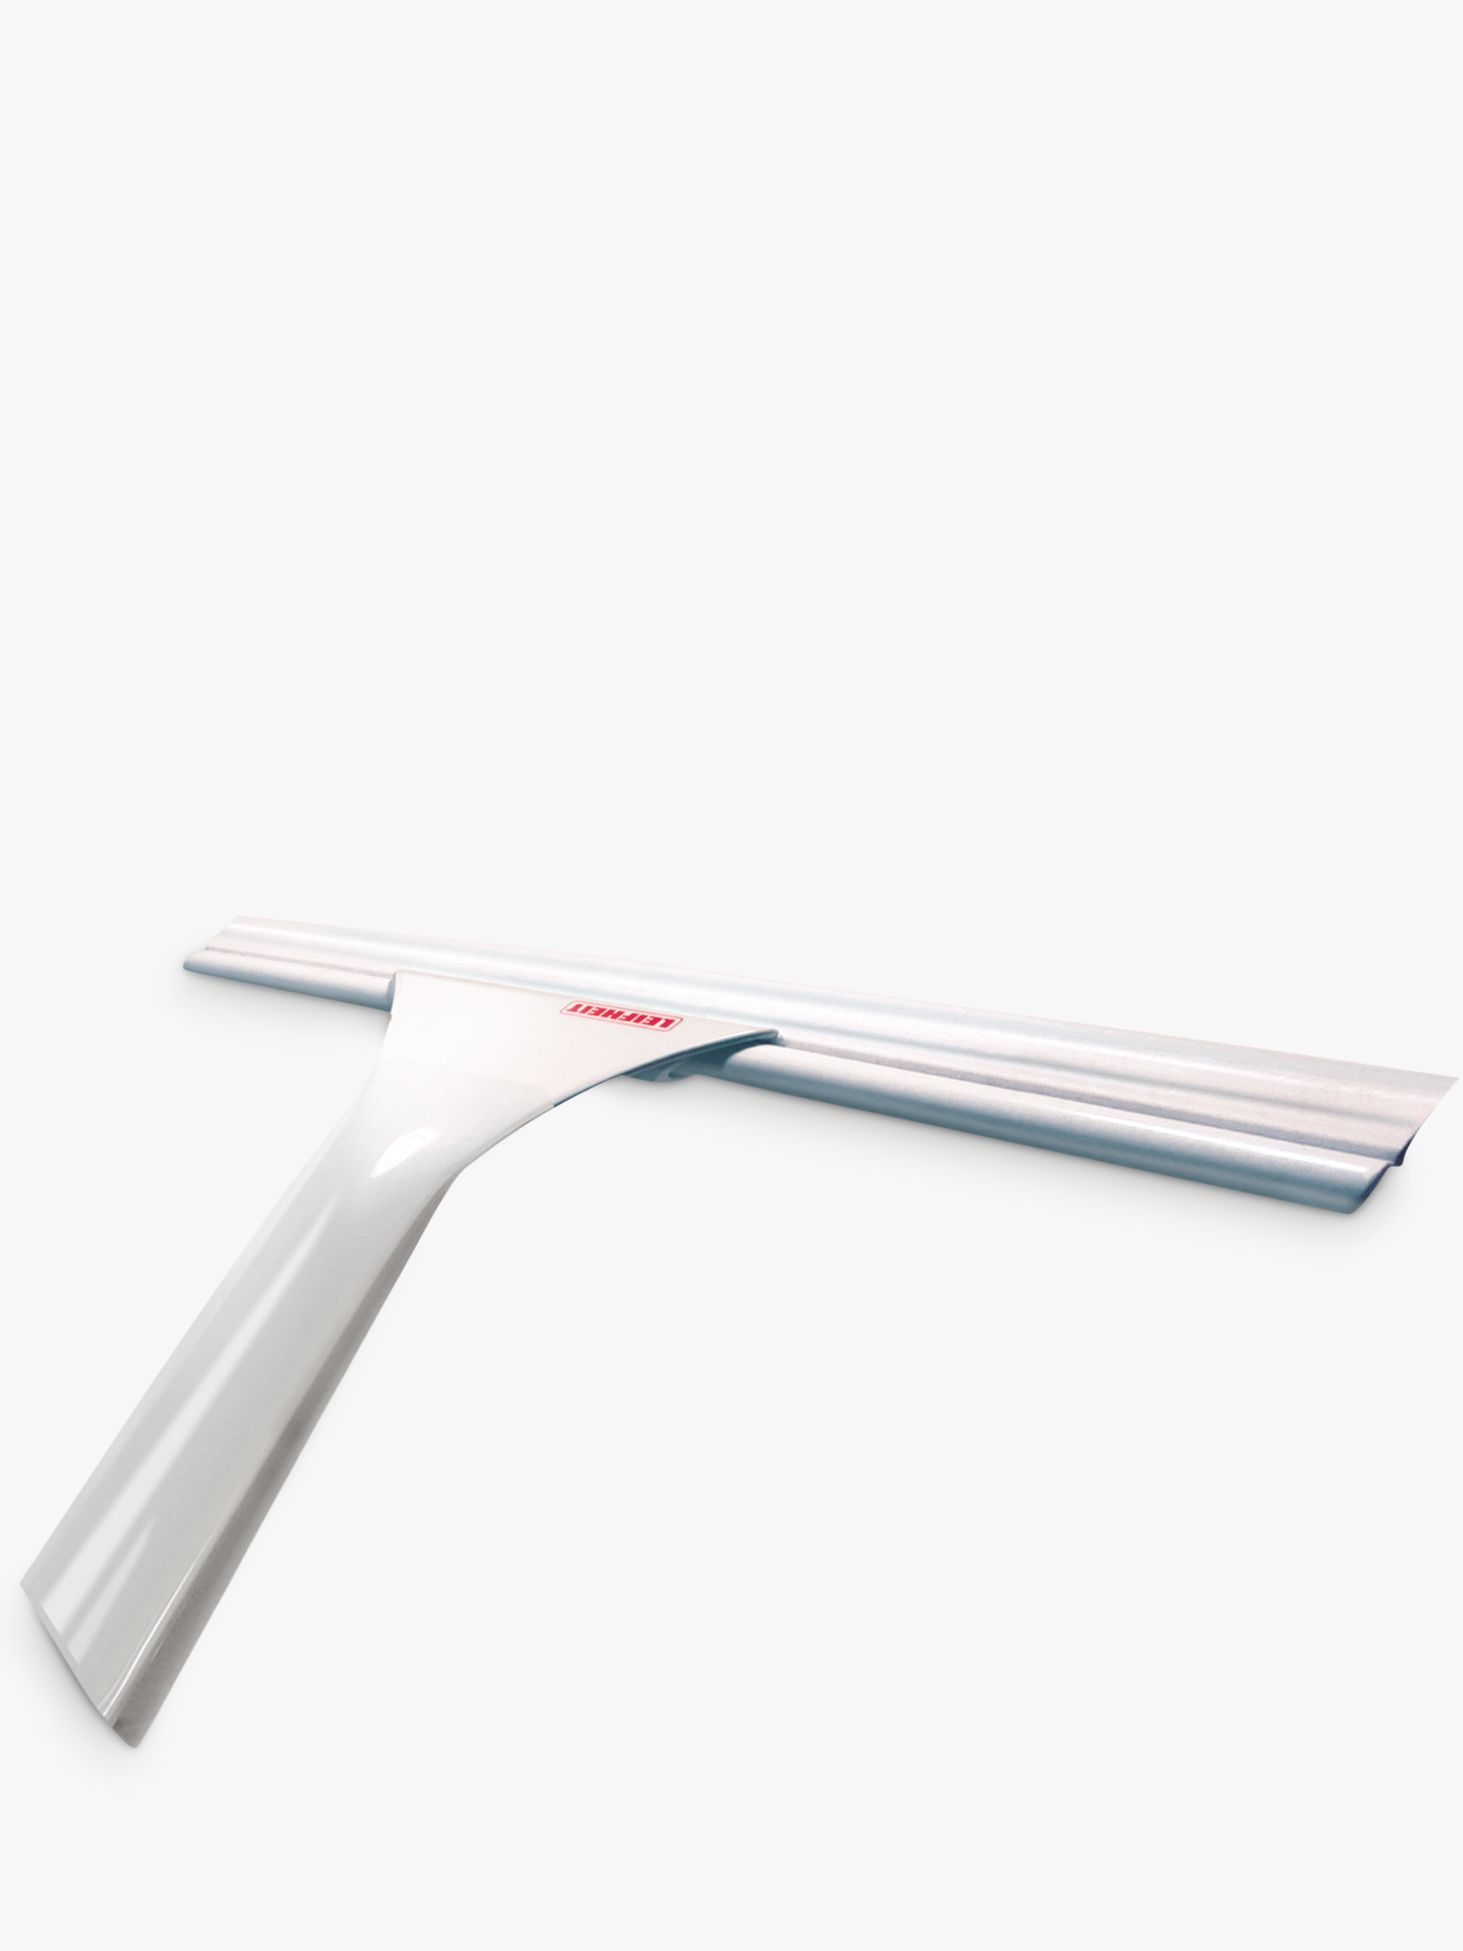 Leifheit Leifheit Cabino Squeegee Shower Wiper